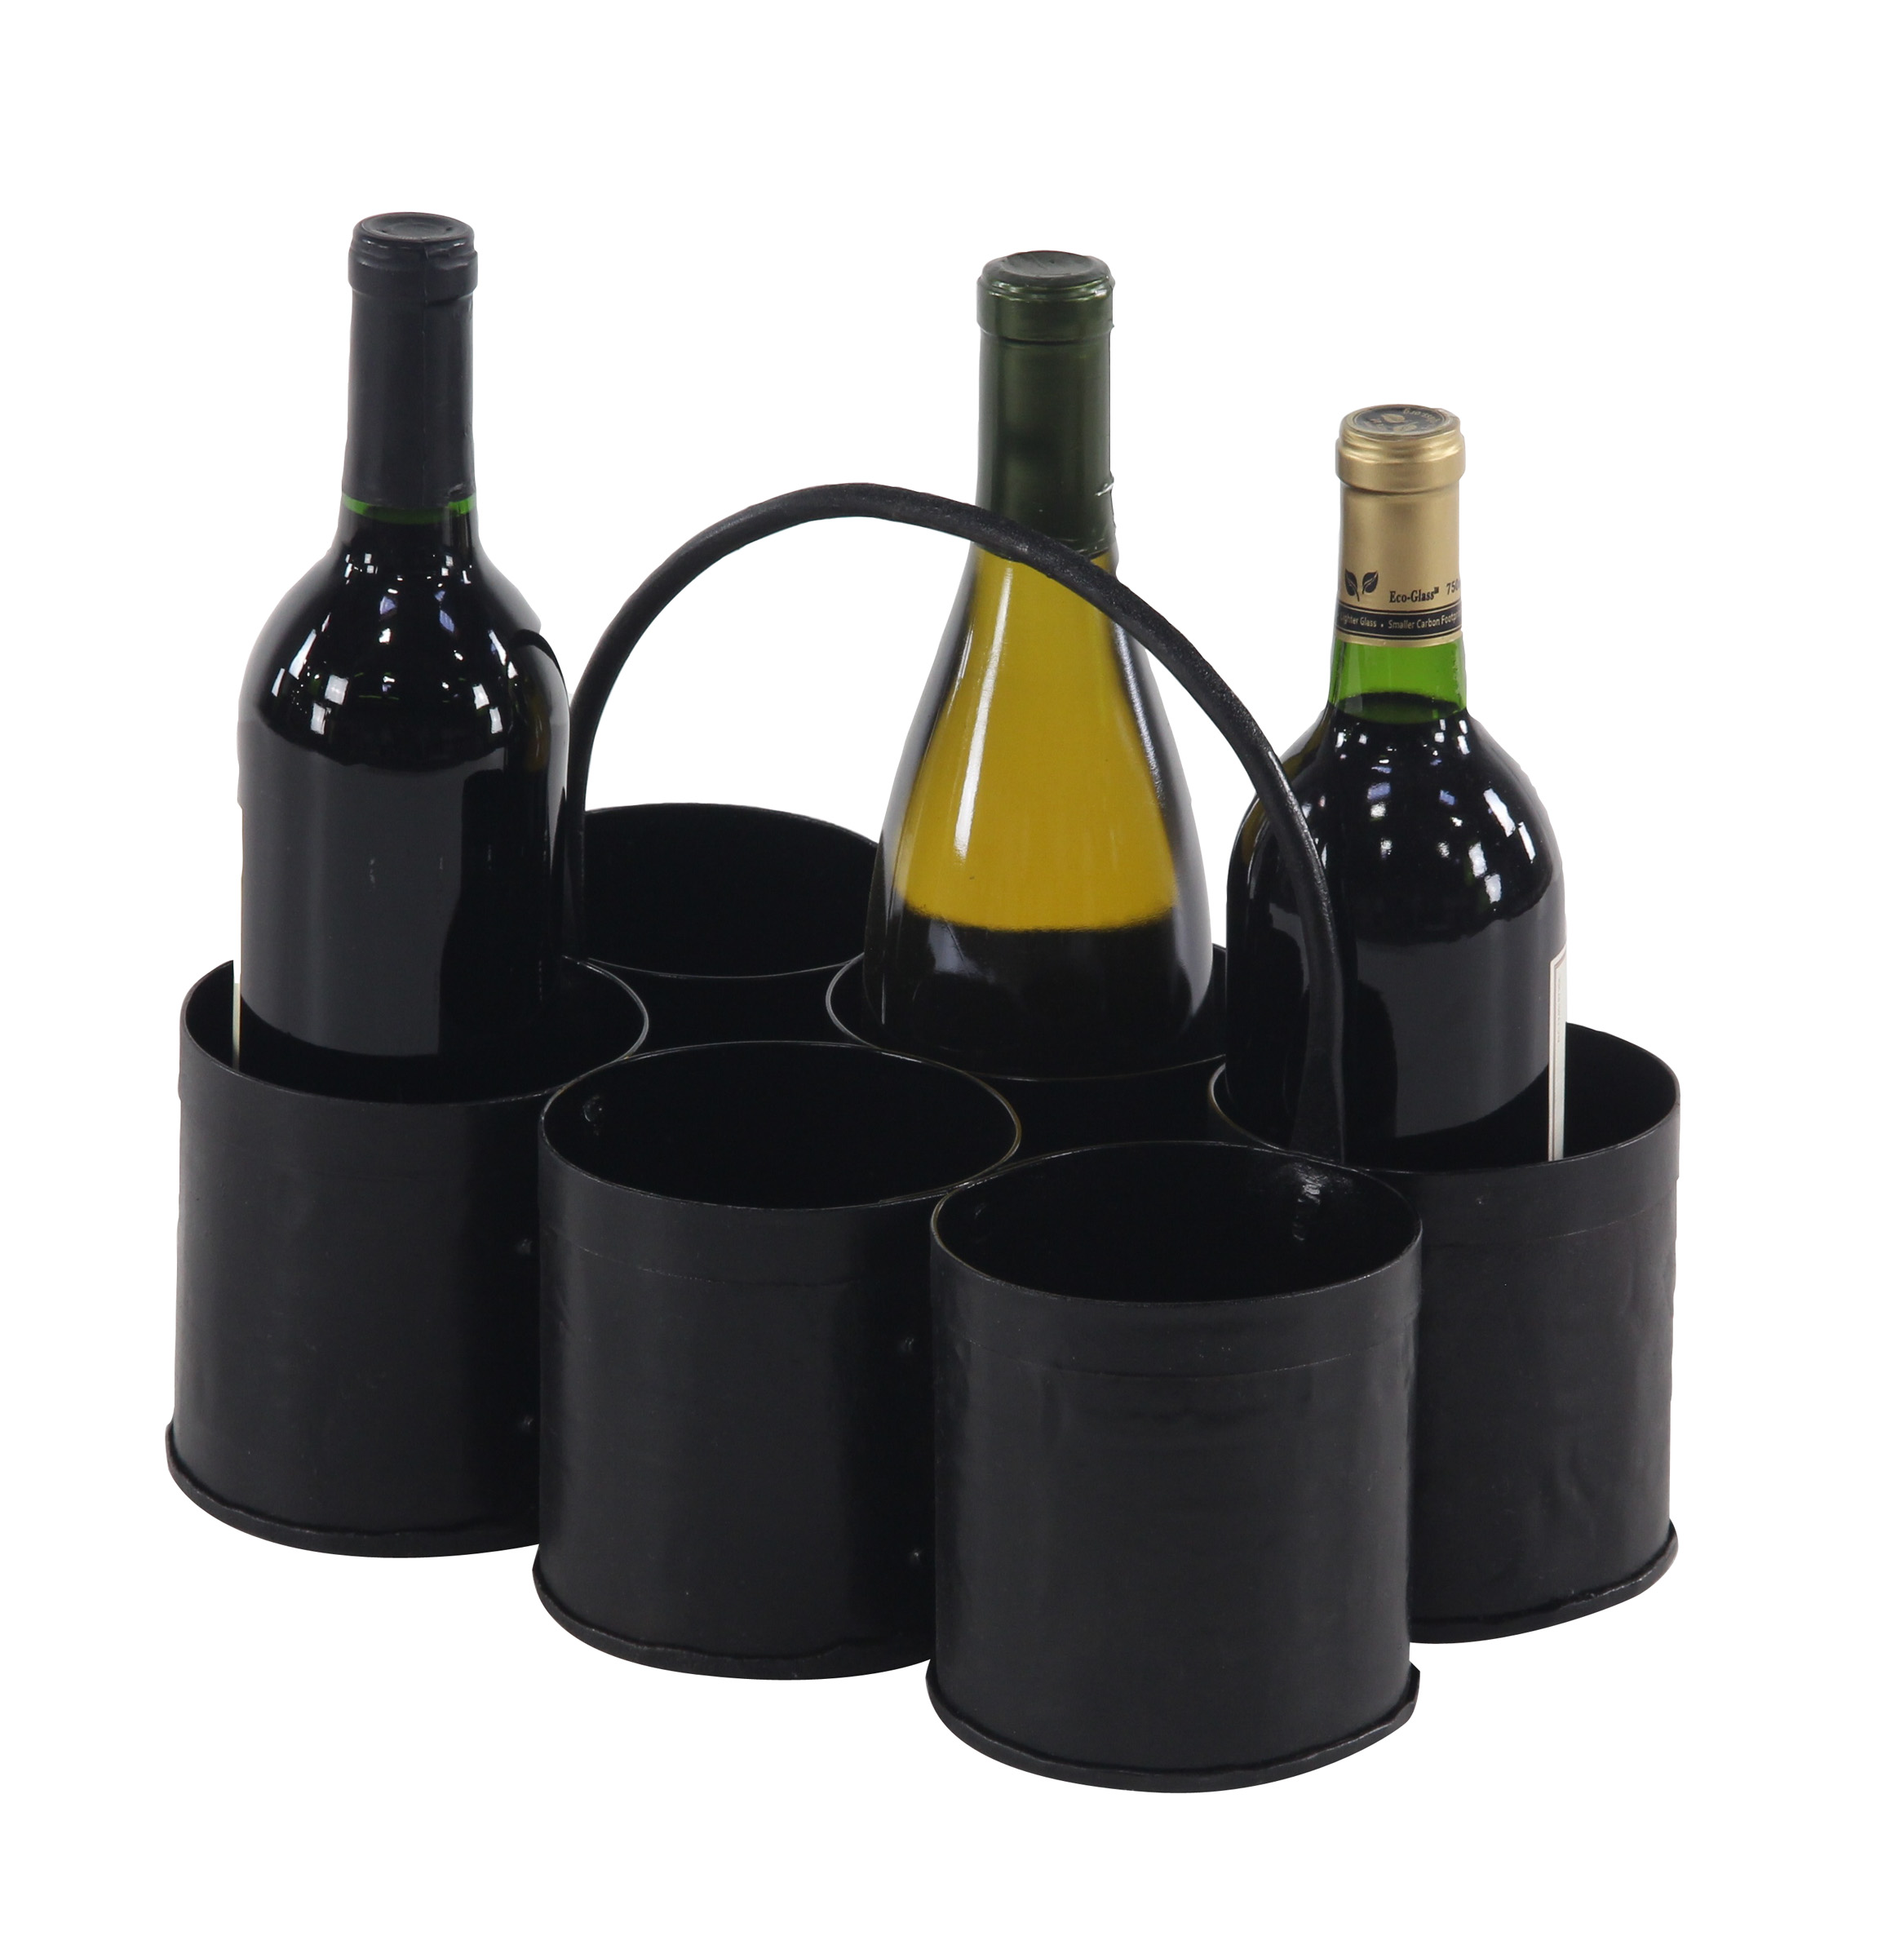 Decmode Farmhouse 5 X 12 Inch Gray Iron Six-Bottle Wine Holder